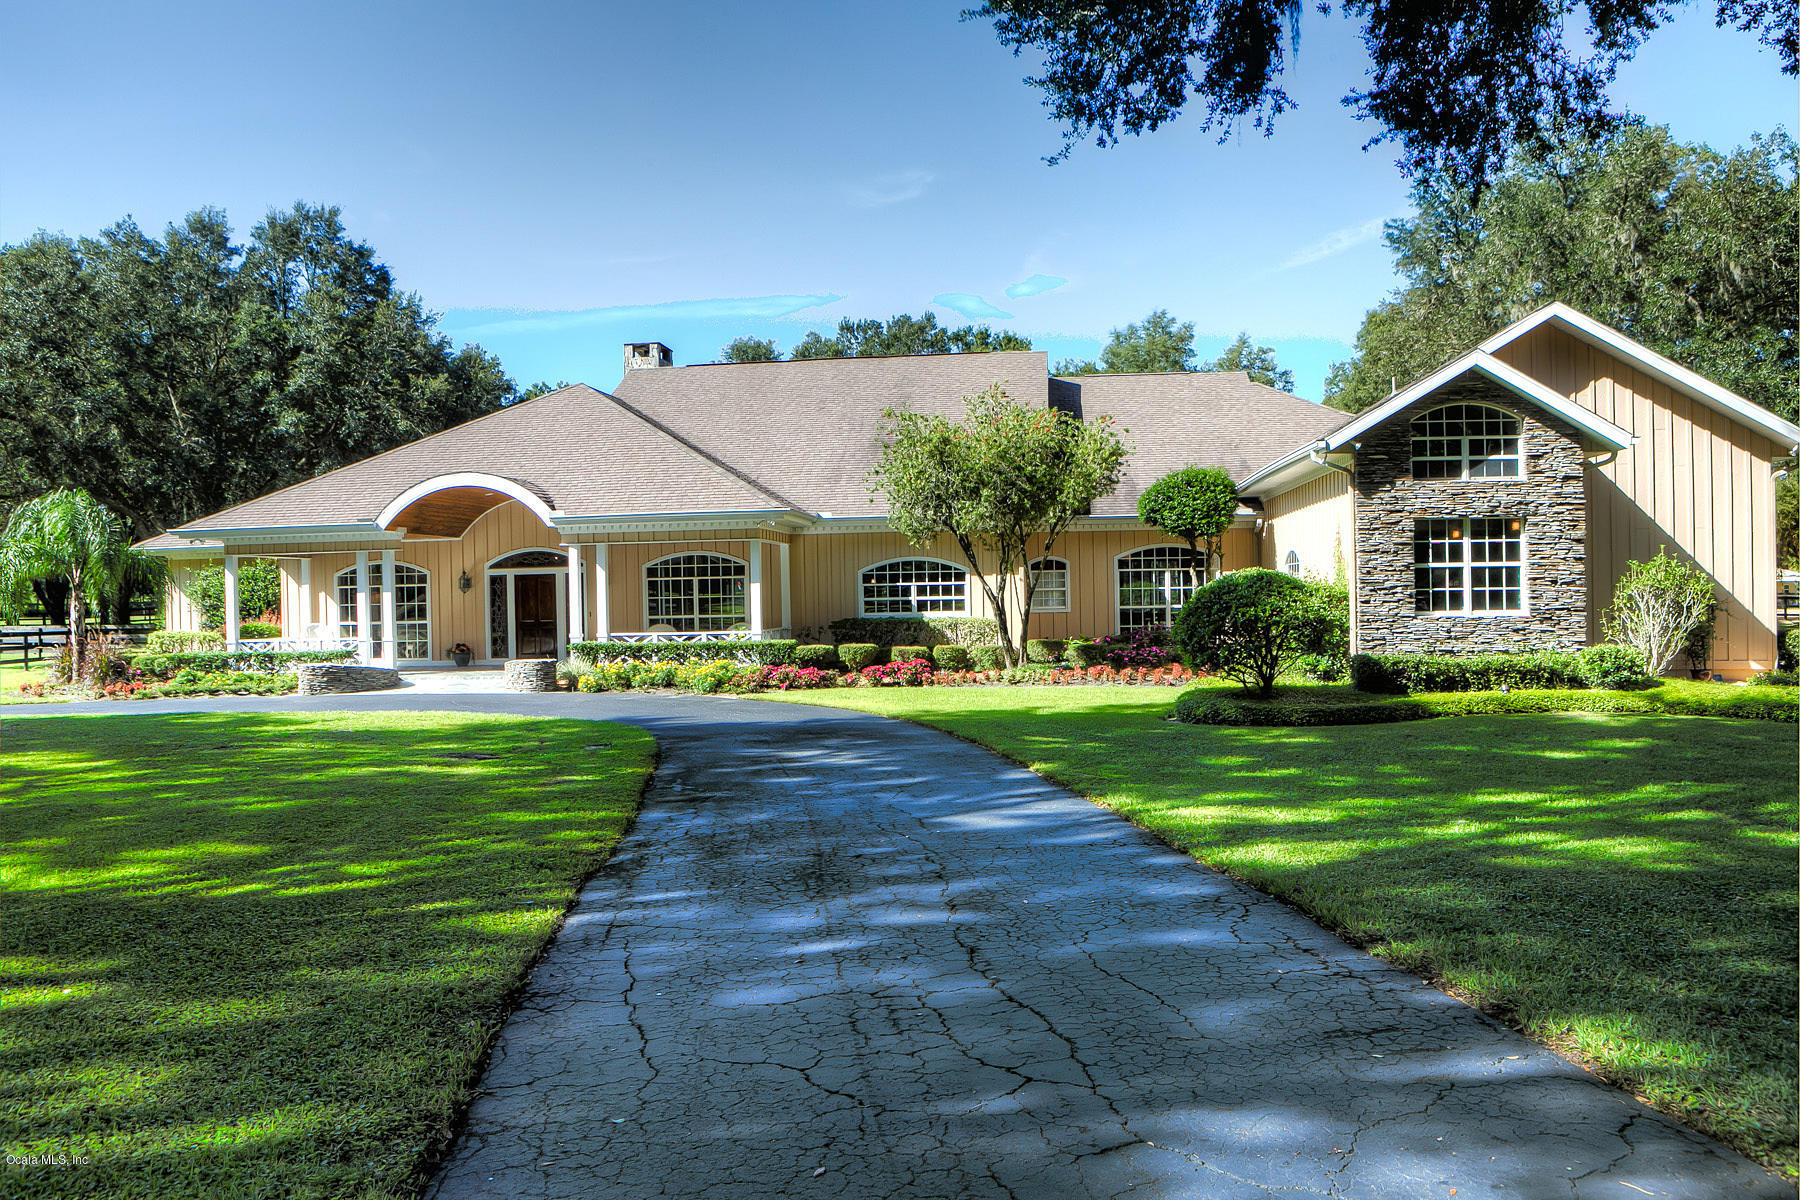 1715 NW 114TH LOOP, OCALA, FL 34475